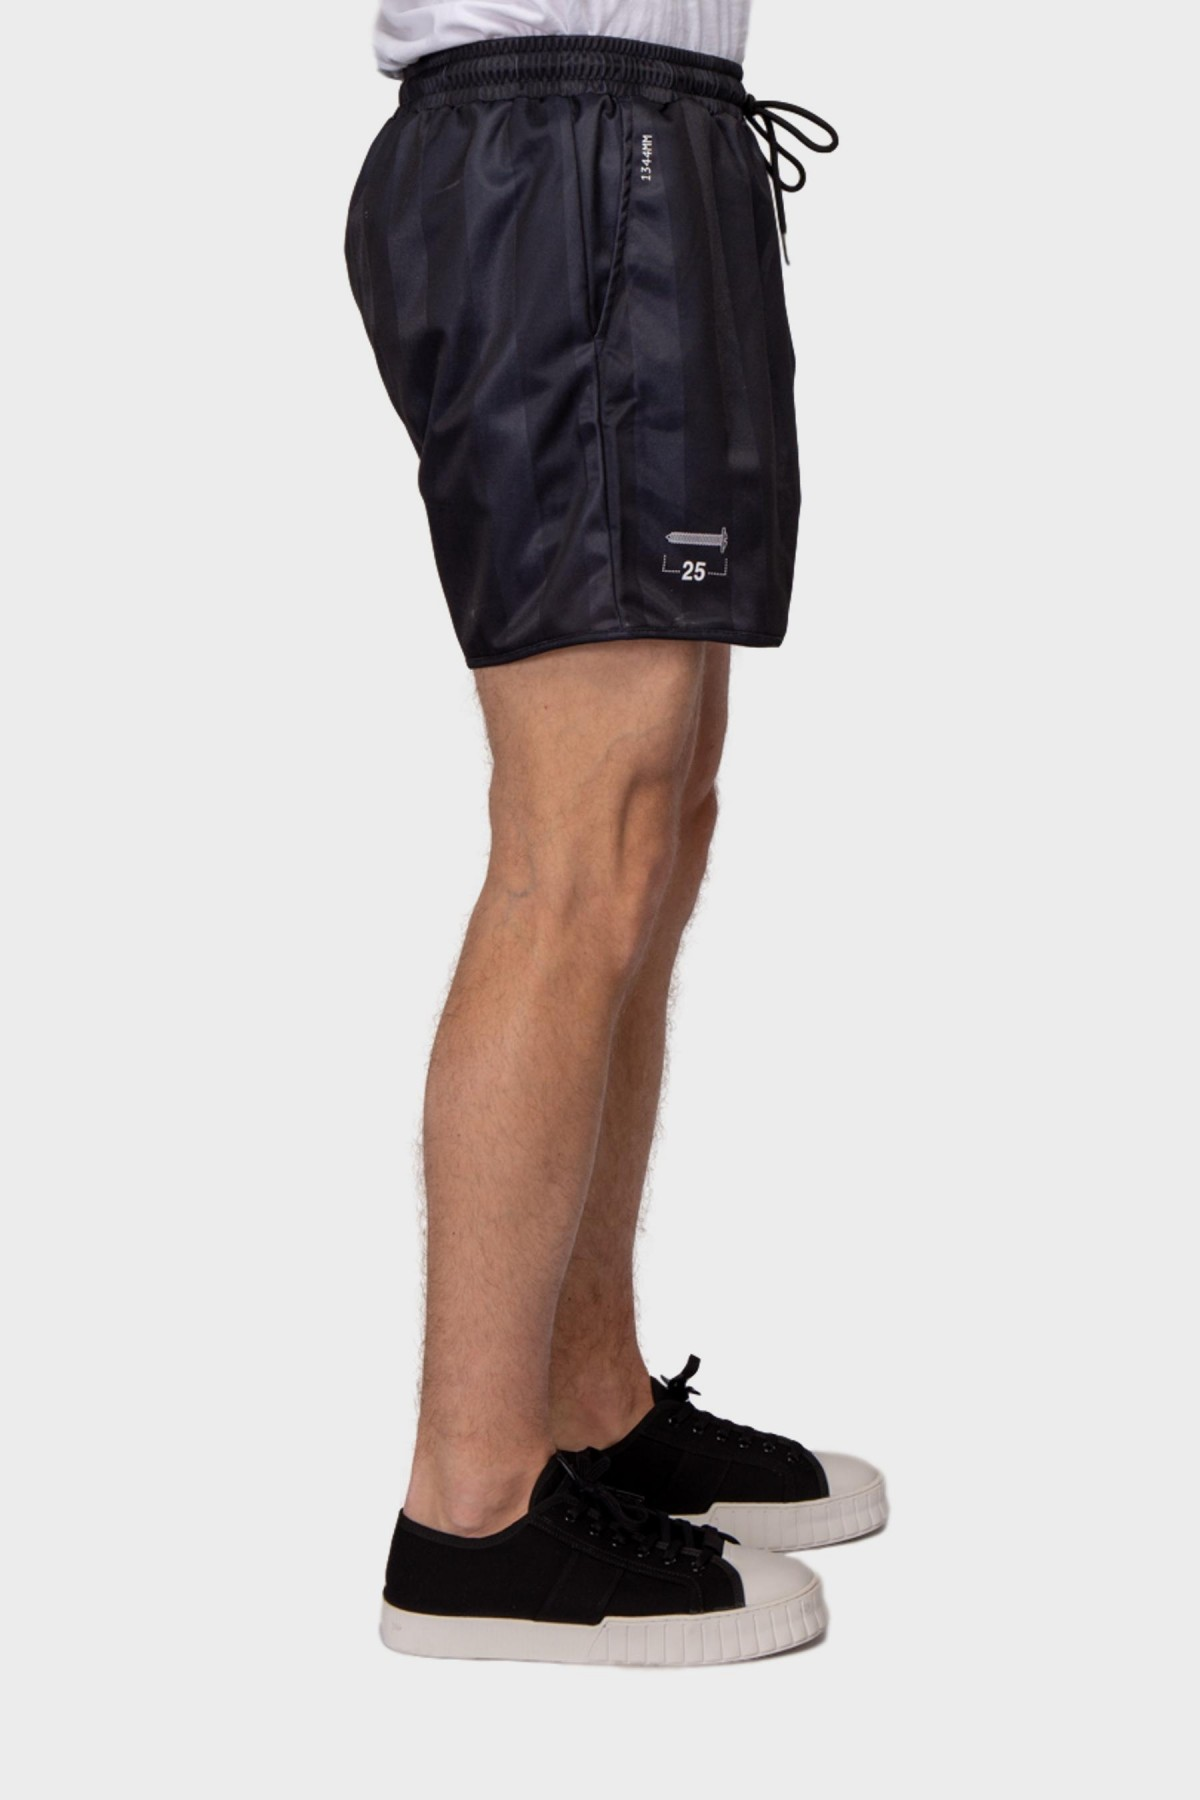 Han Kjøbenhavn Football Shorts in Black